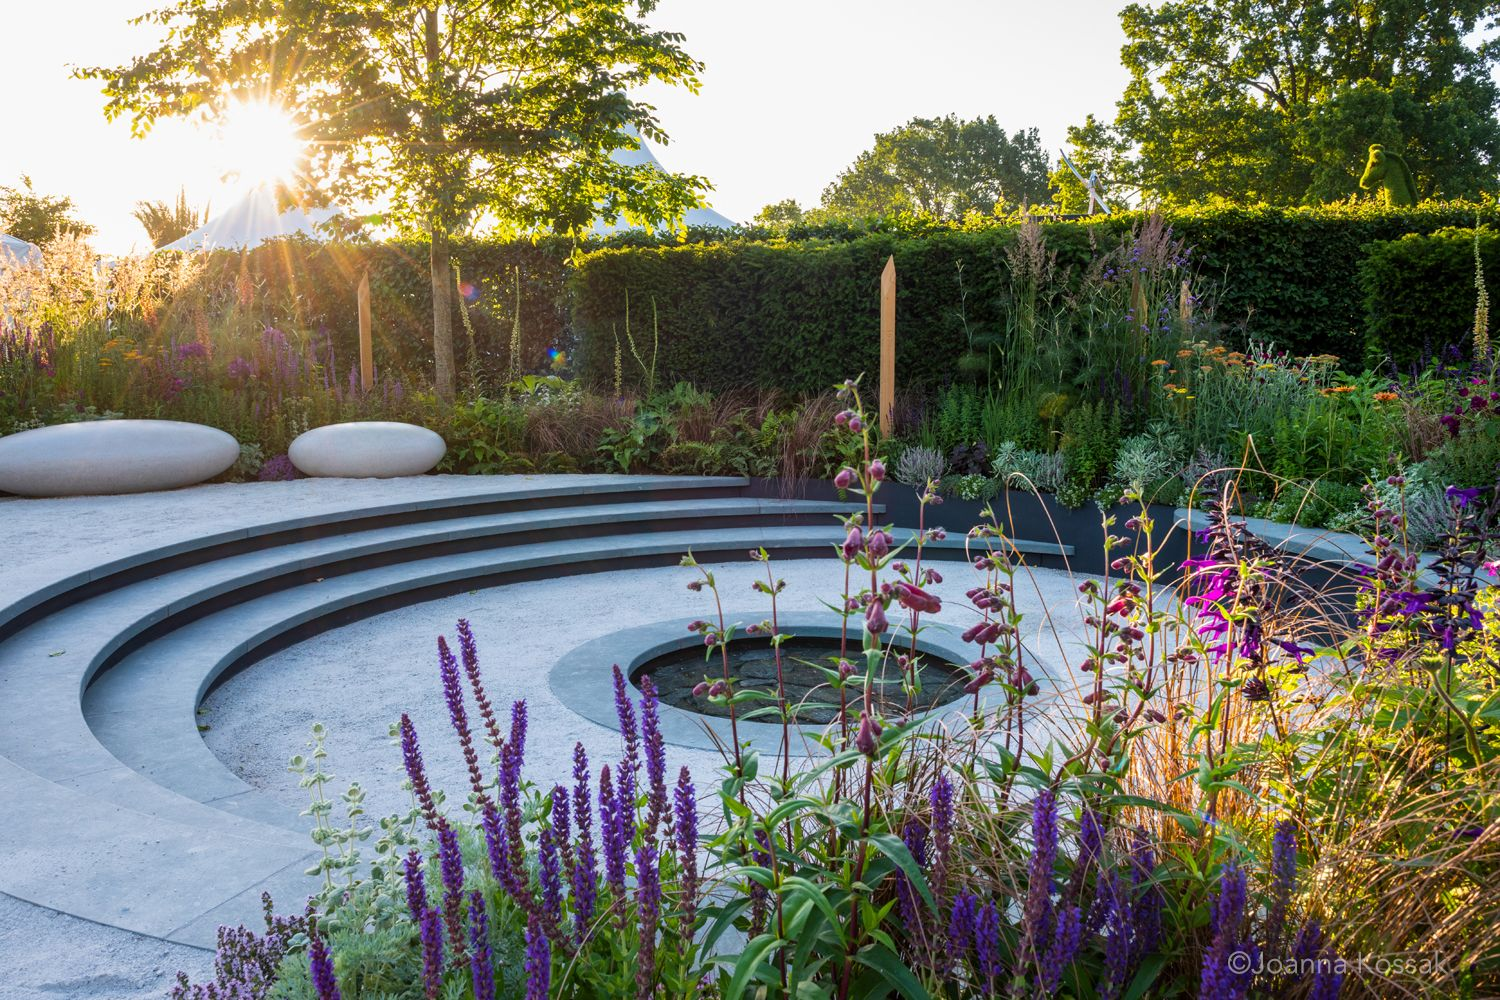 Pin by Dr Proctor on Shilling hill   Rhs hampton court ...